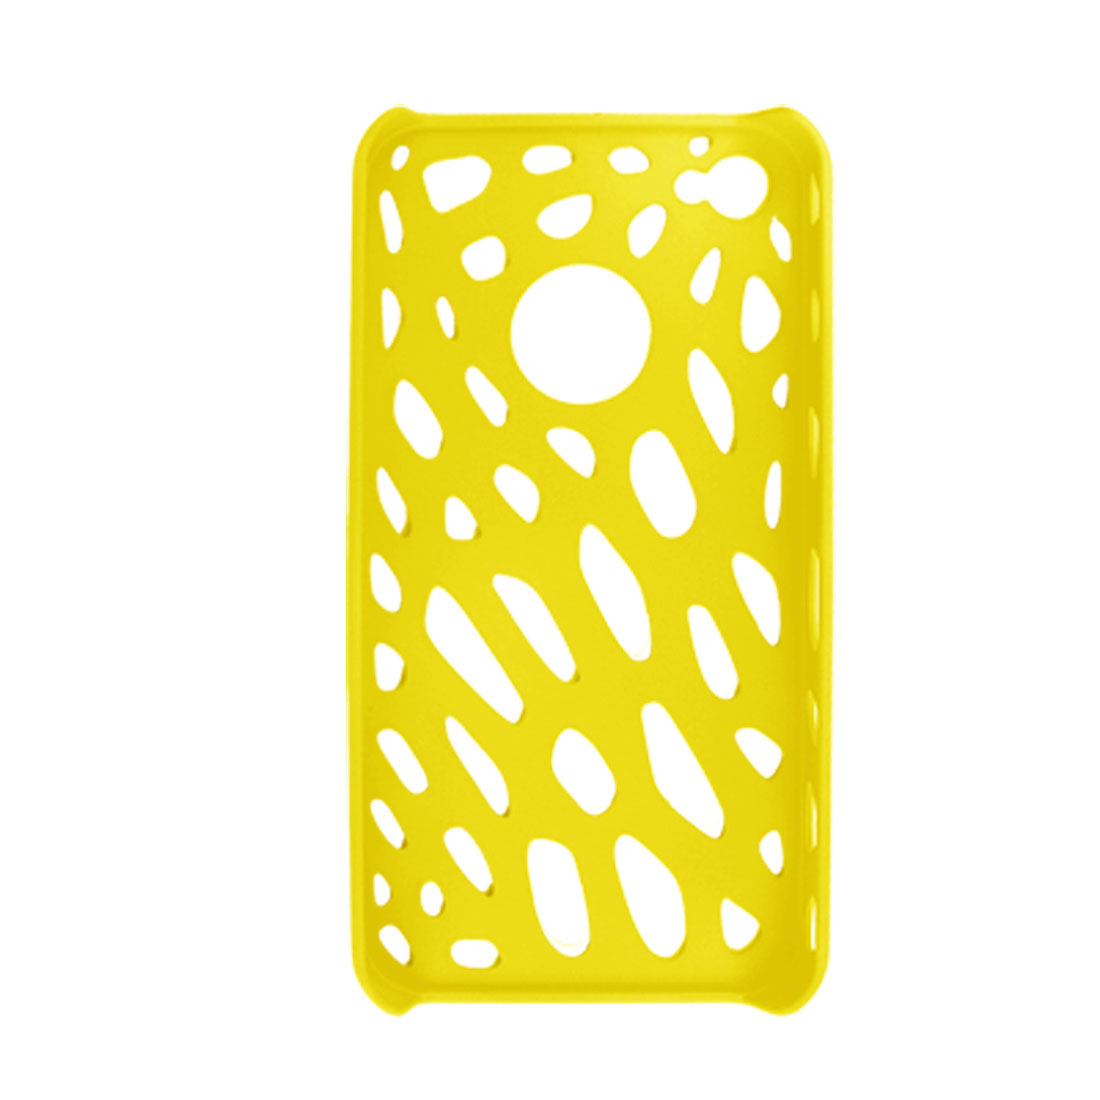 Yellow Holes Design Plastic Case + Screen Protector for iPhone 4 4G